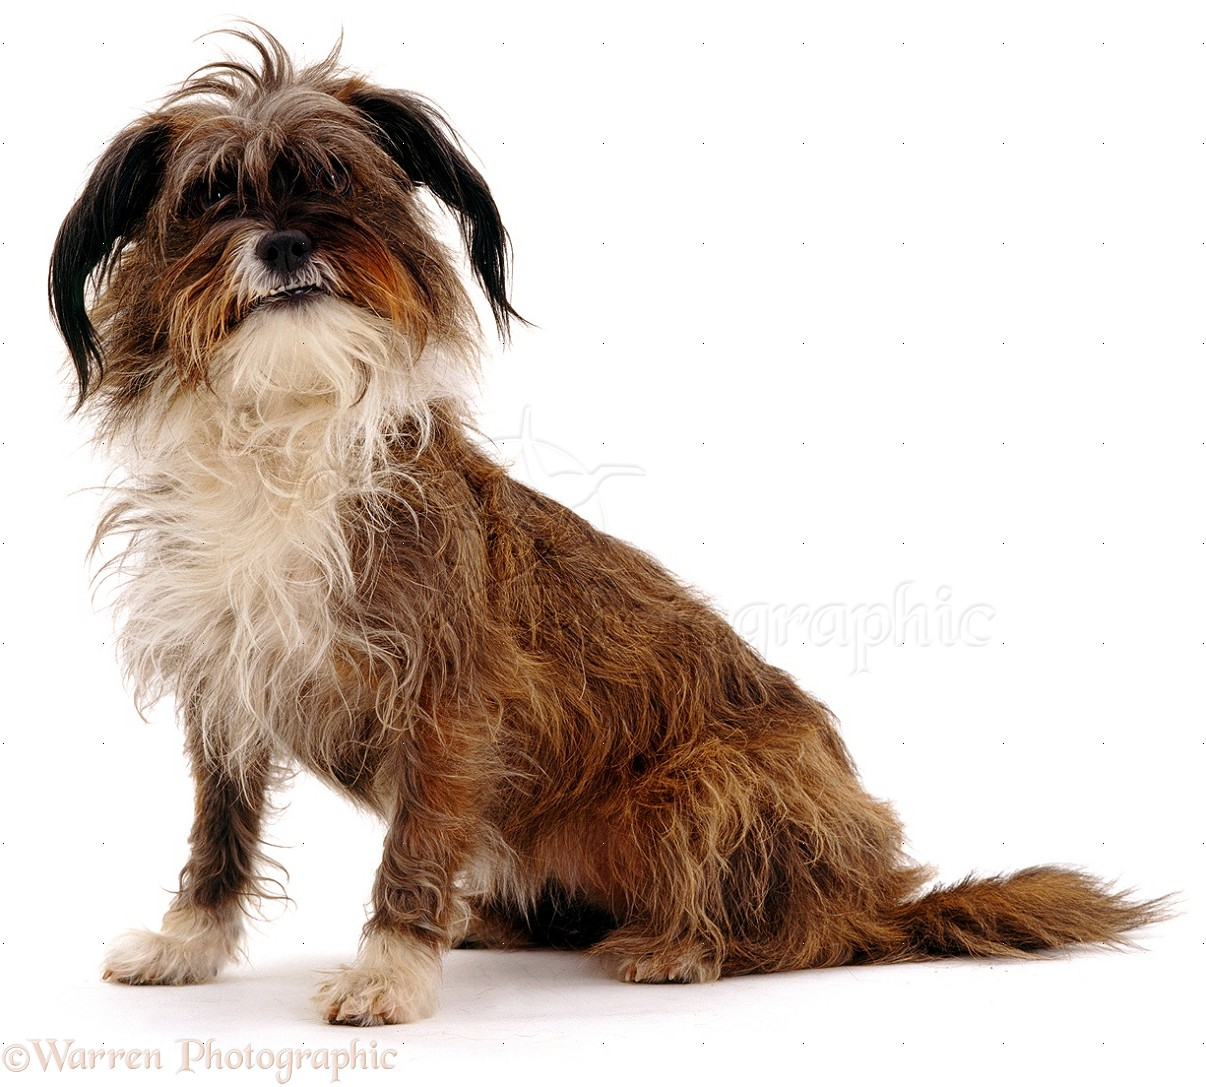 Tibetan Terrier Dog: Tibetan Tibetan Terrier Cross Breed